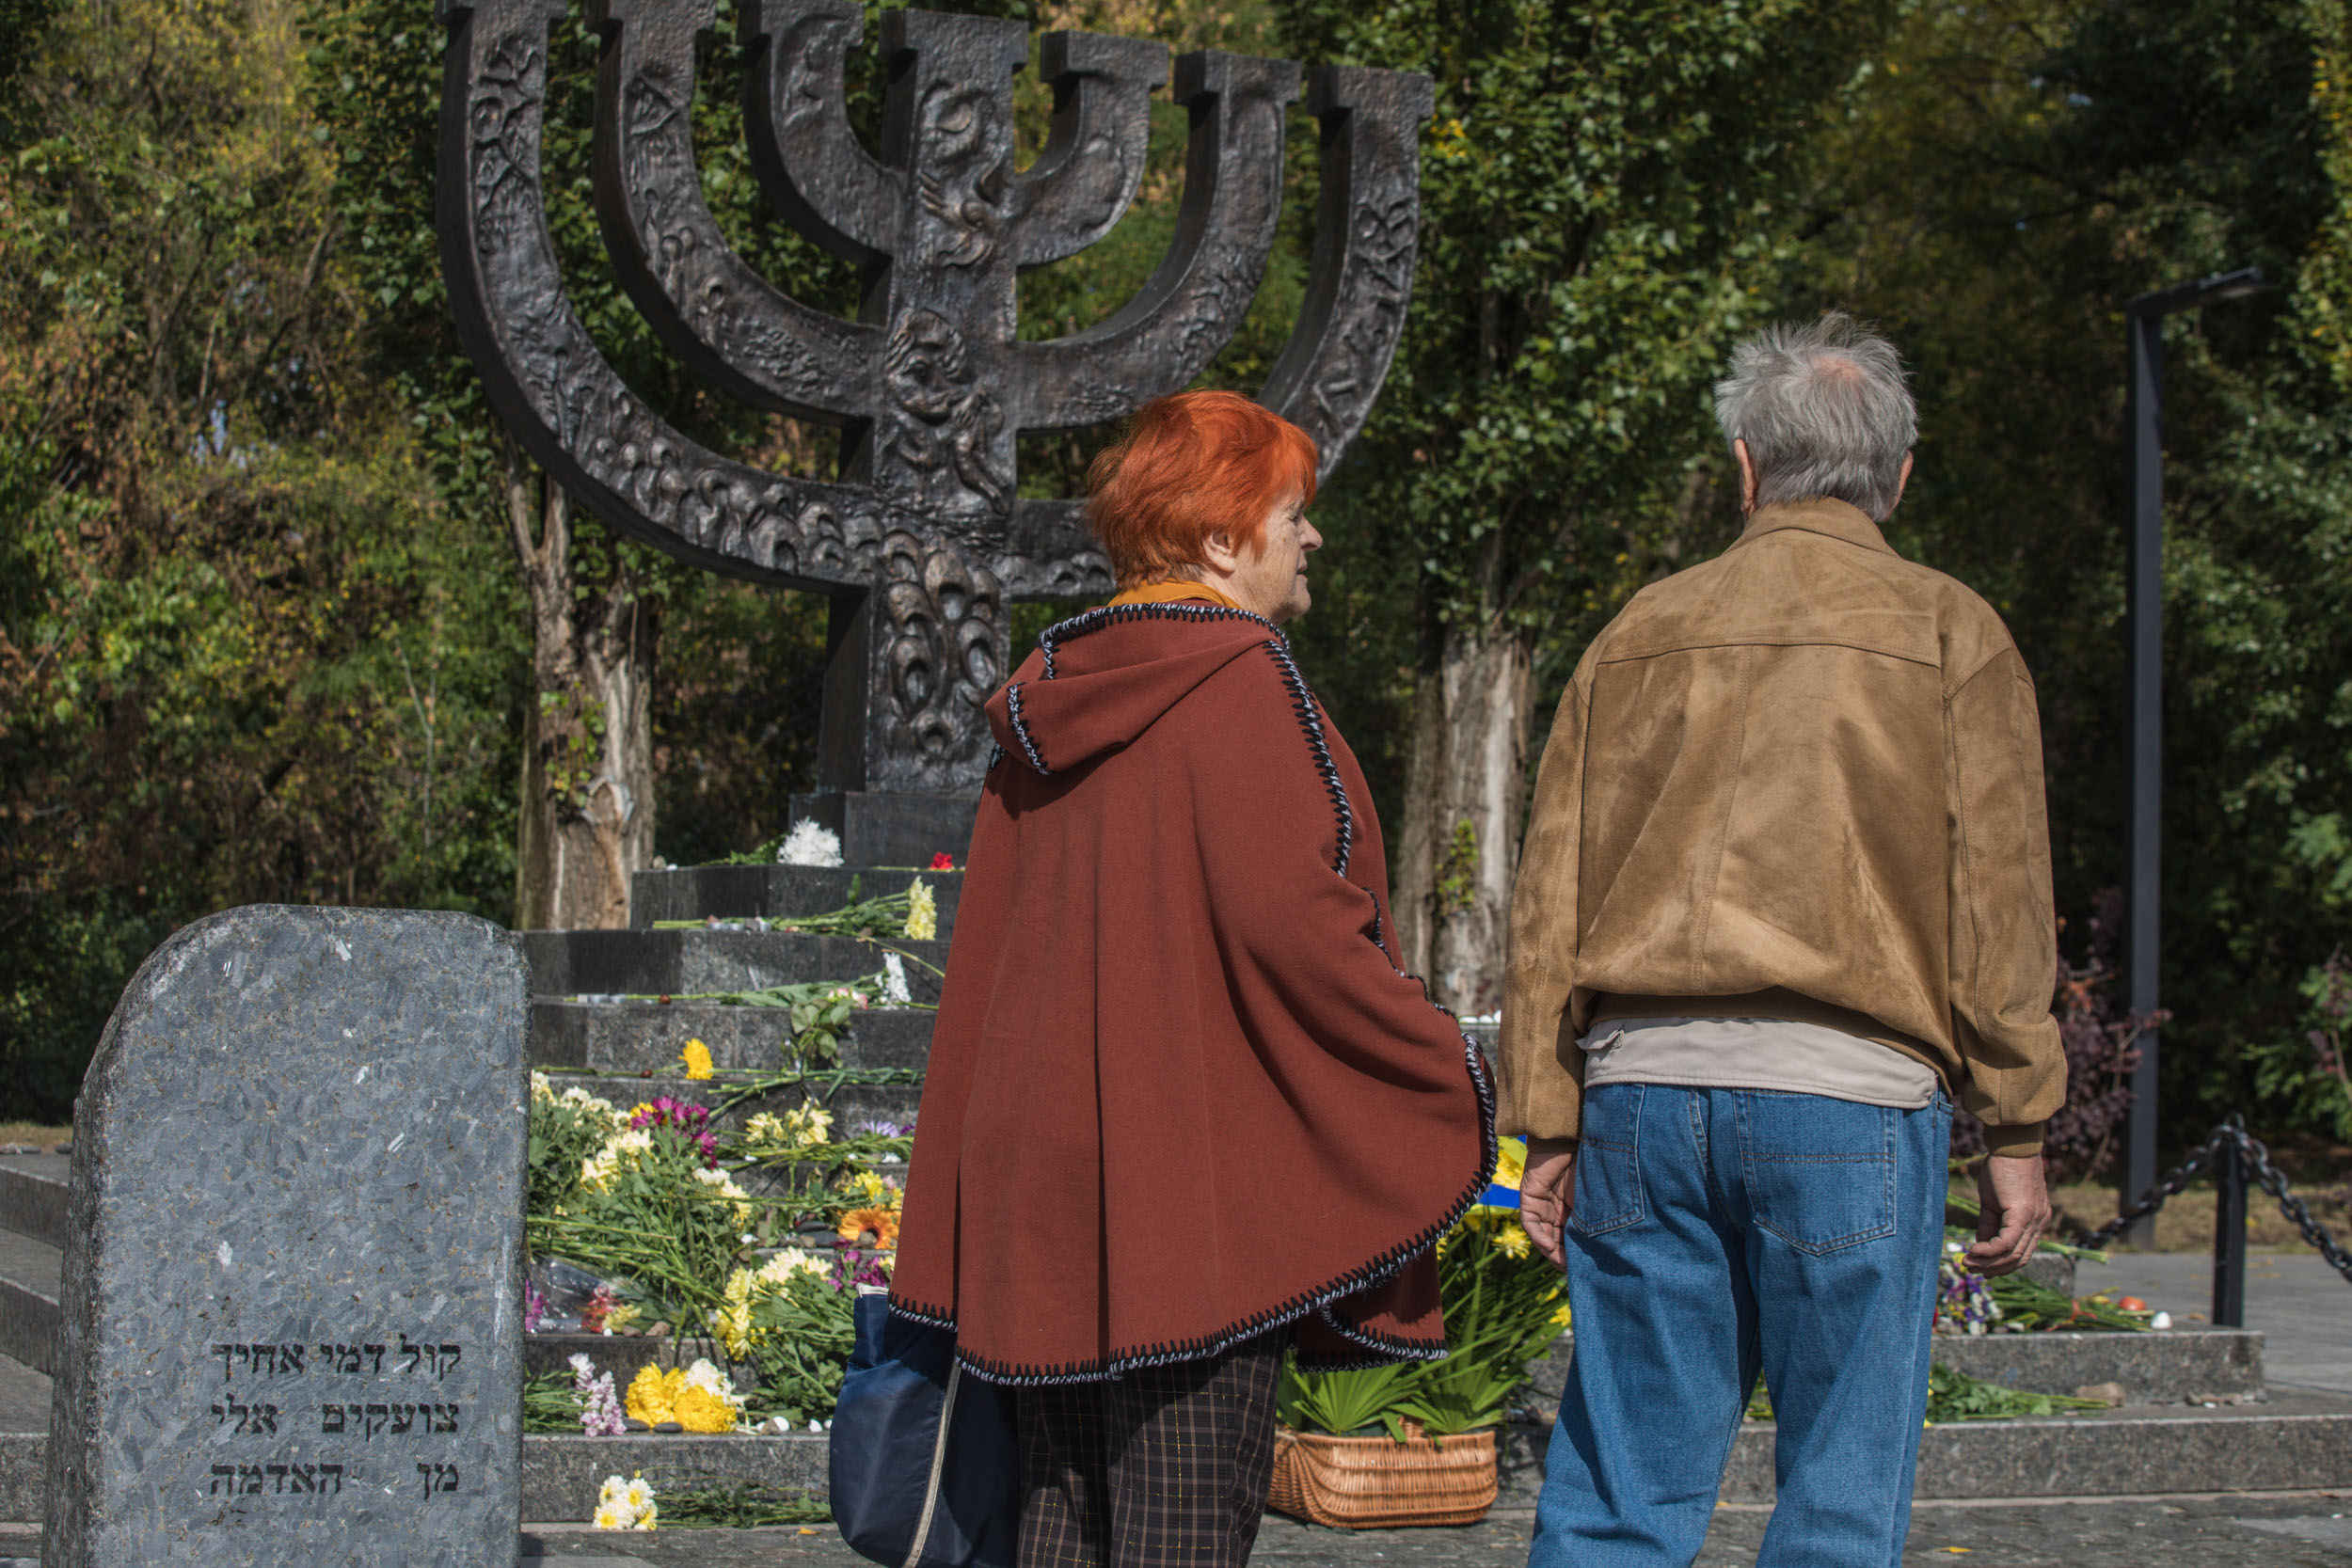 The Jews Of Ukraine. Who Are They? • Ukraїner Within What Year Is It According To Jews